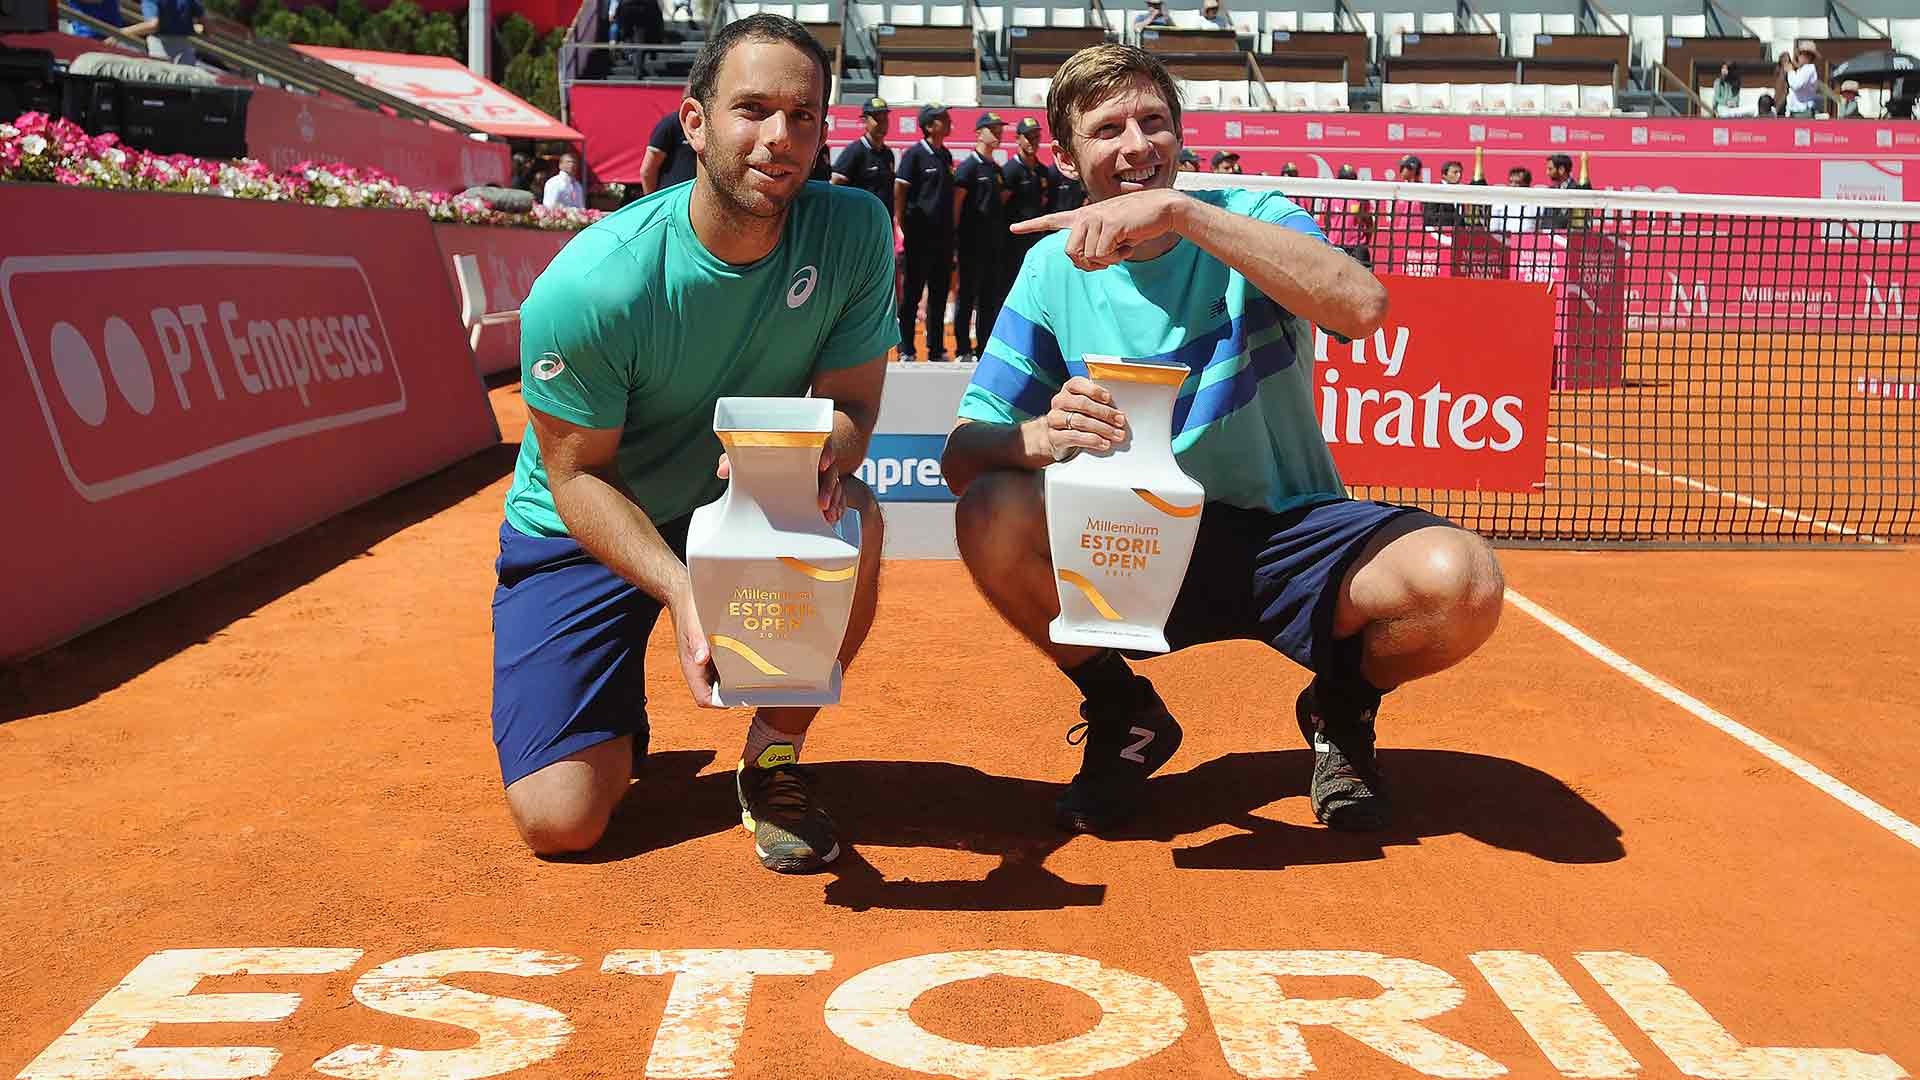 <a href='/en/players/scott-lipsky/l580/overview'>Scott Lipsky</a> and <a href='/en/players/eric-butorac/bc35/overview'>Eric Butorac</a> capture their third team title in Estoril.